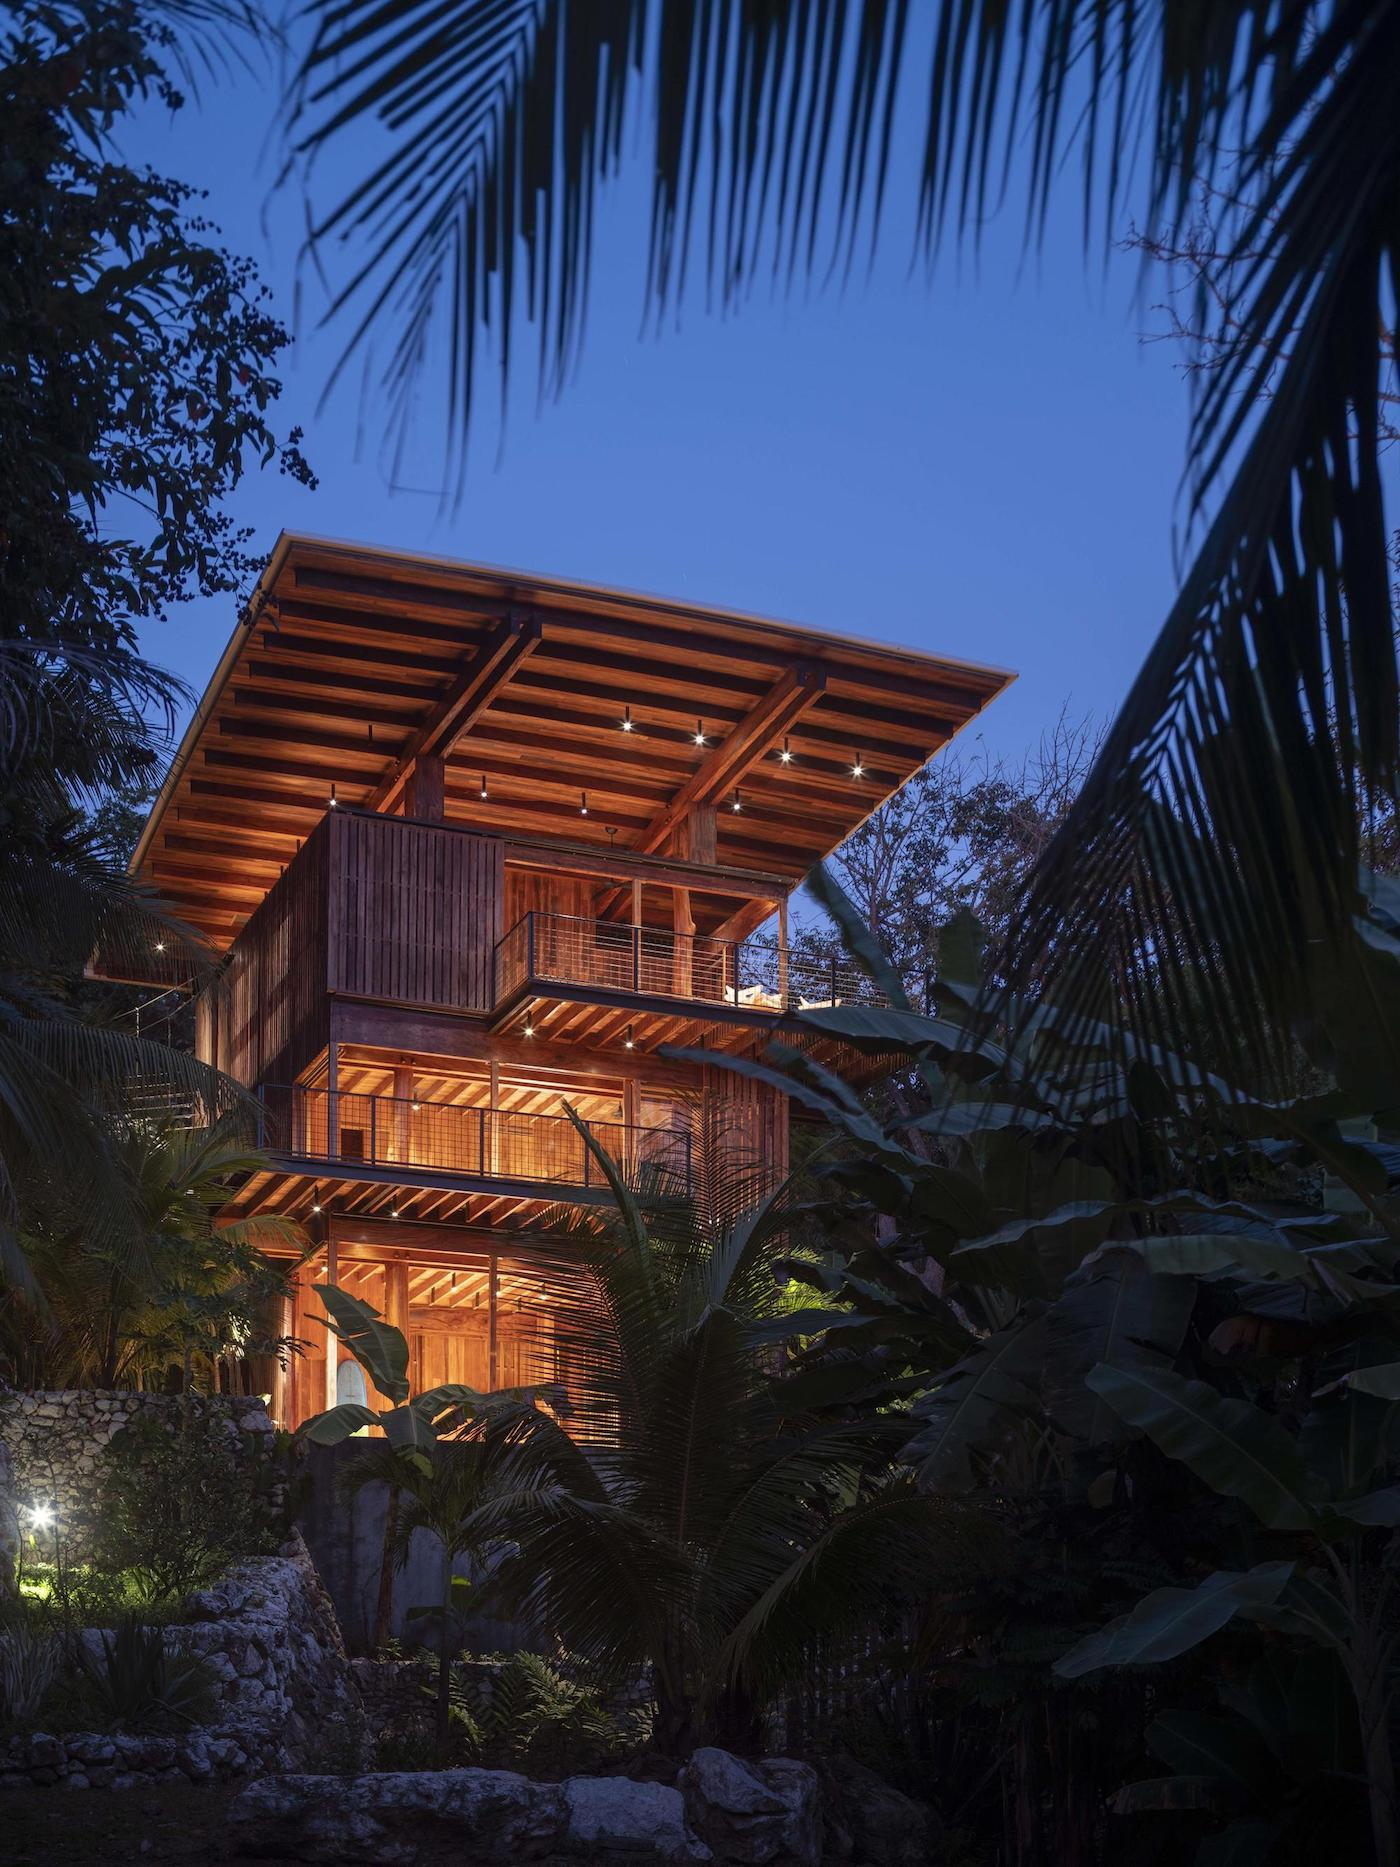 Distant night time view of Costa Rica Treehouse